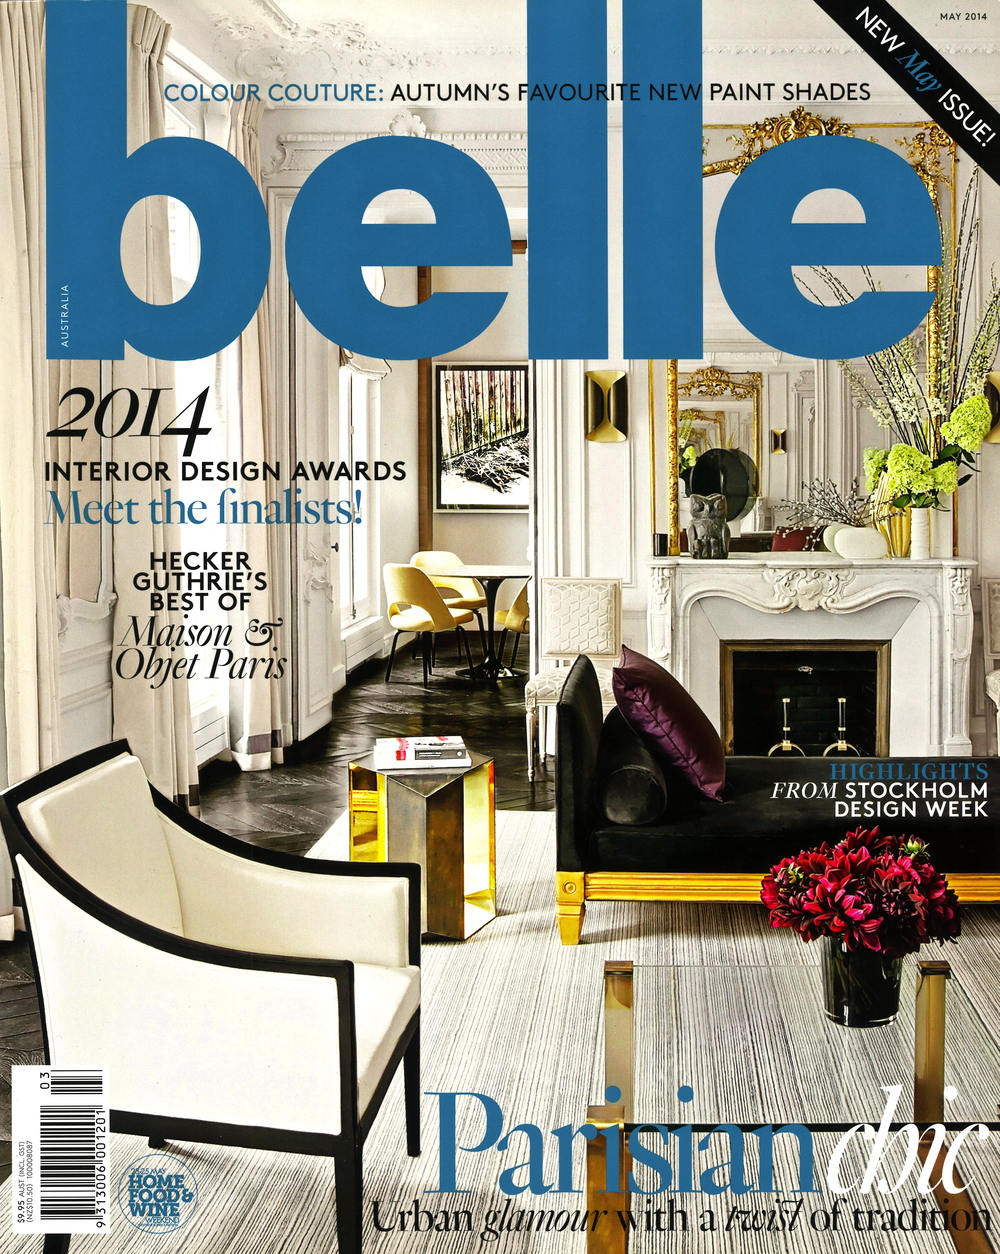 Belle_May 2014-cover.jpg